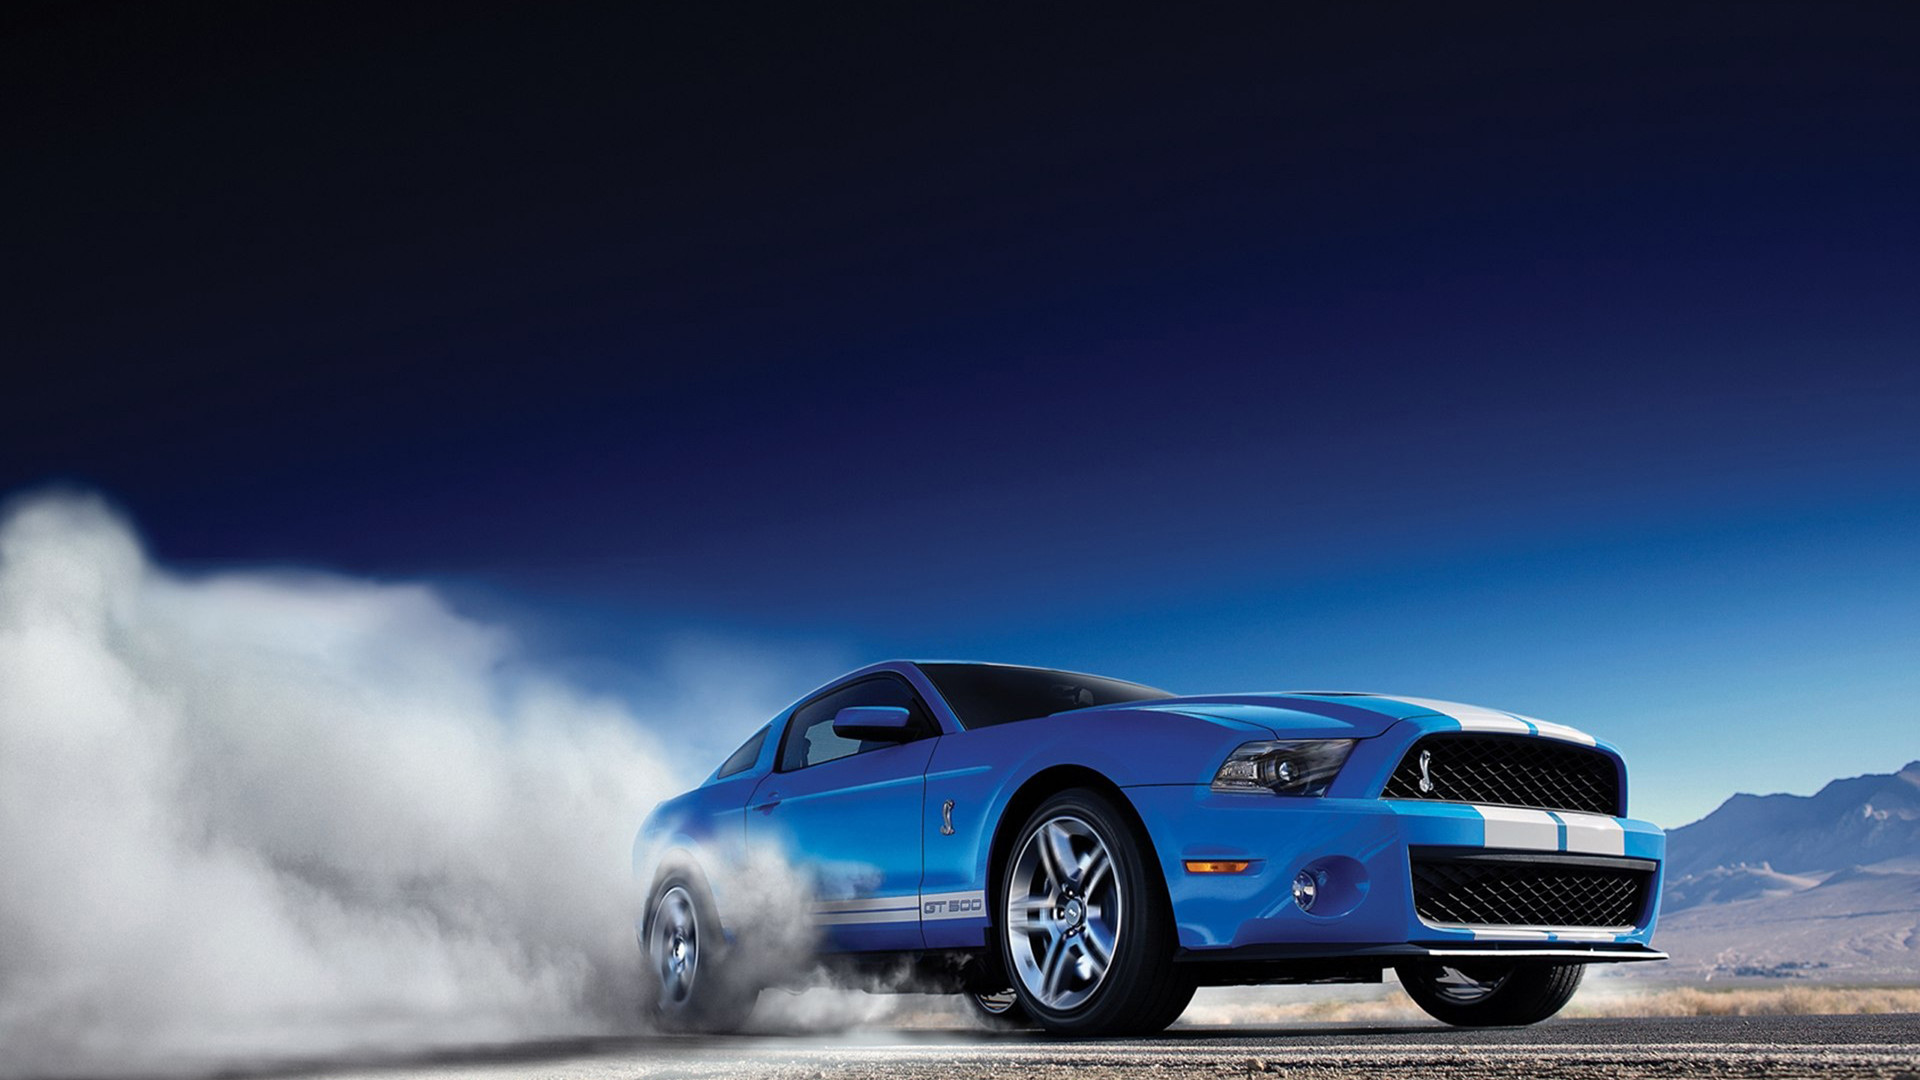 Ford Mustang Cobra Shelby GT500 Picture Wallpaper